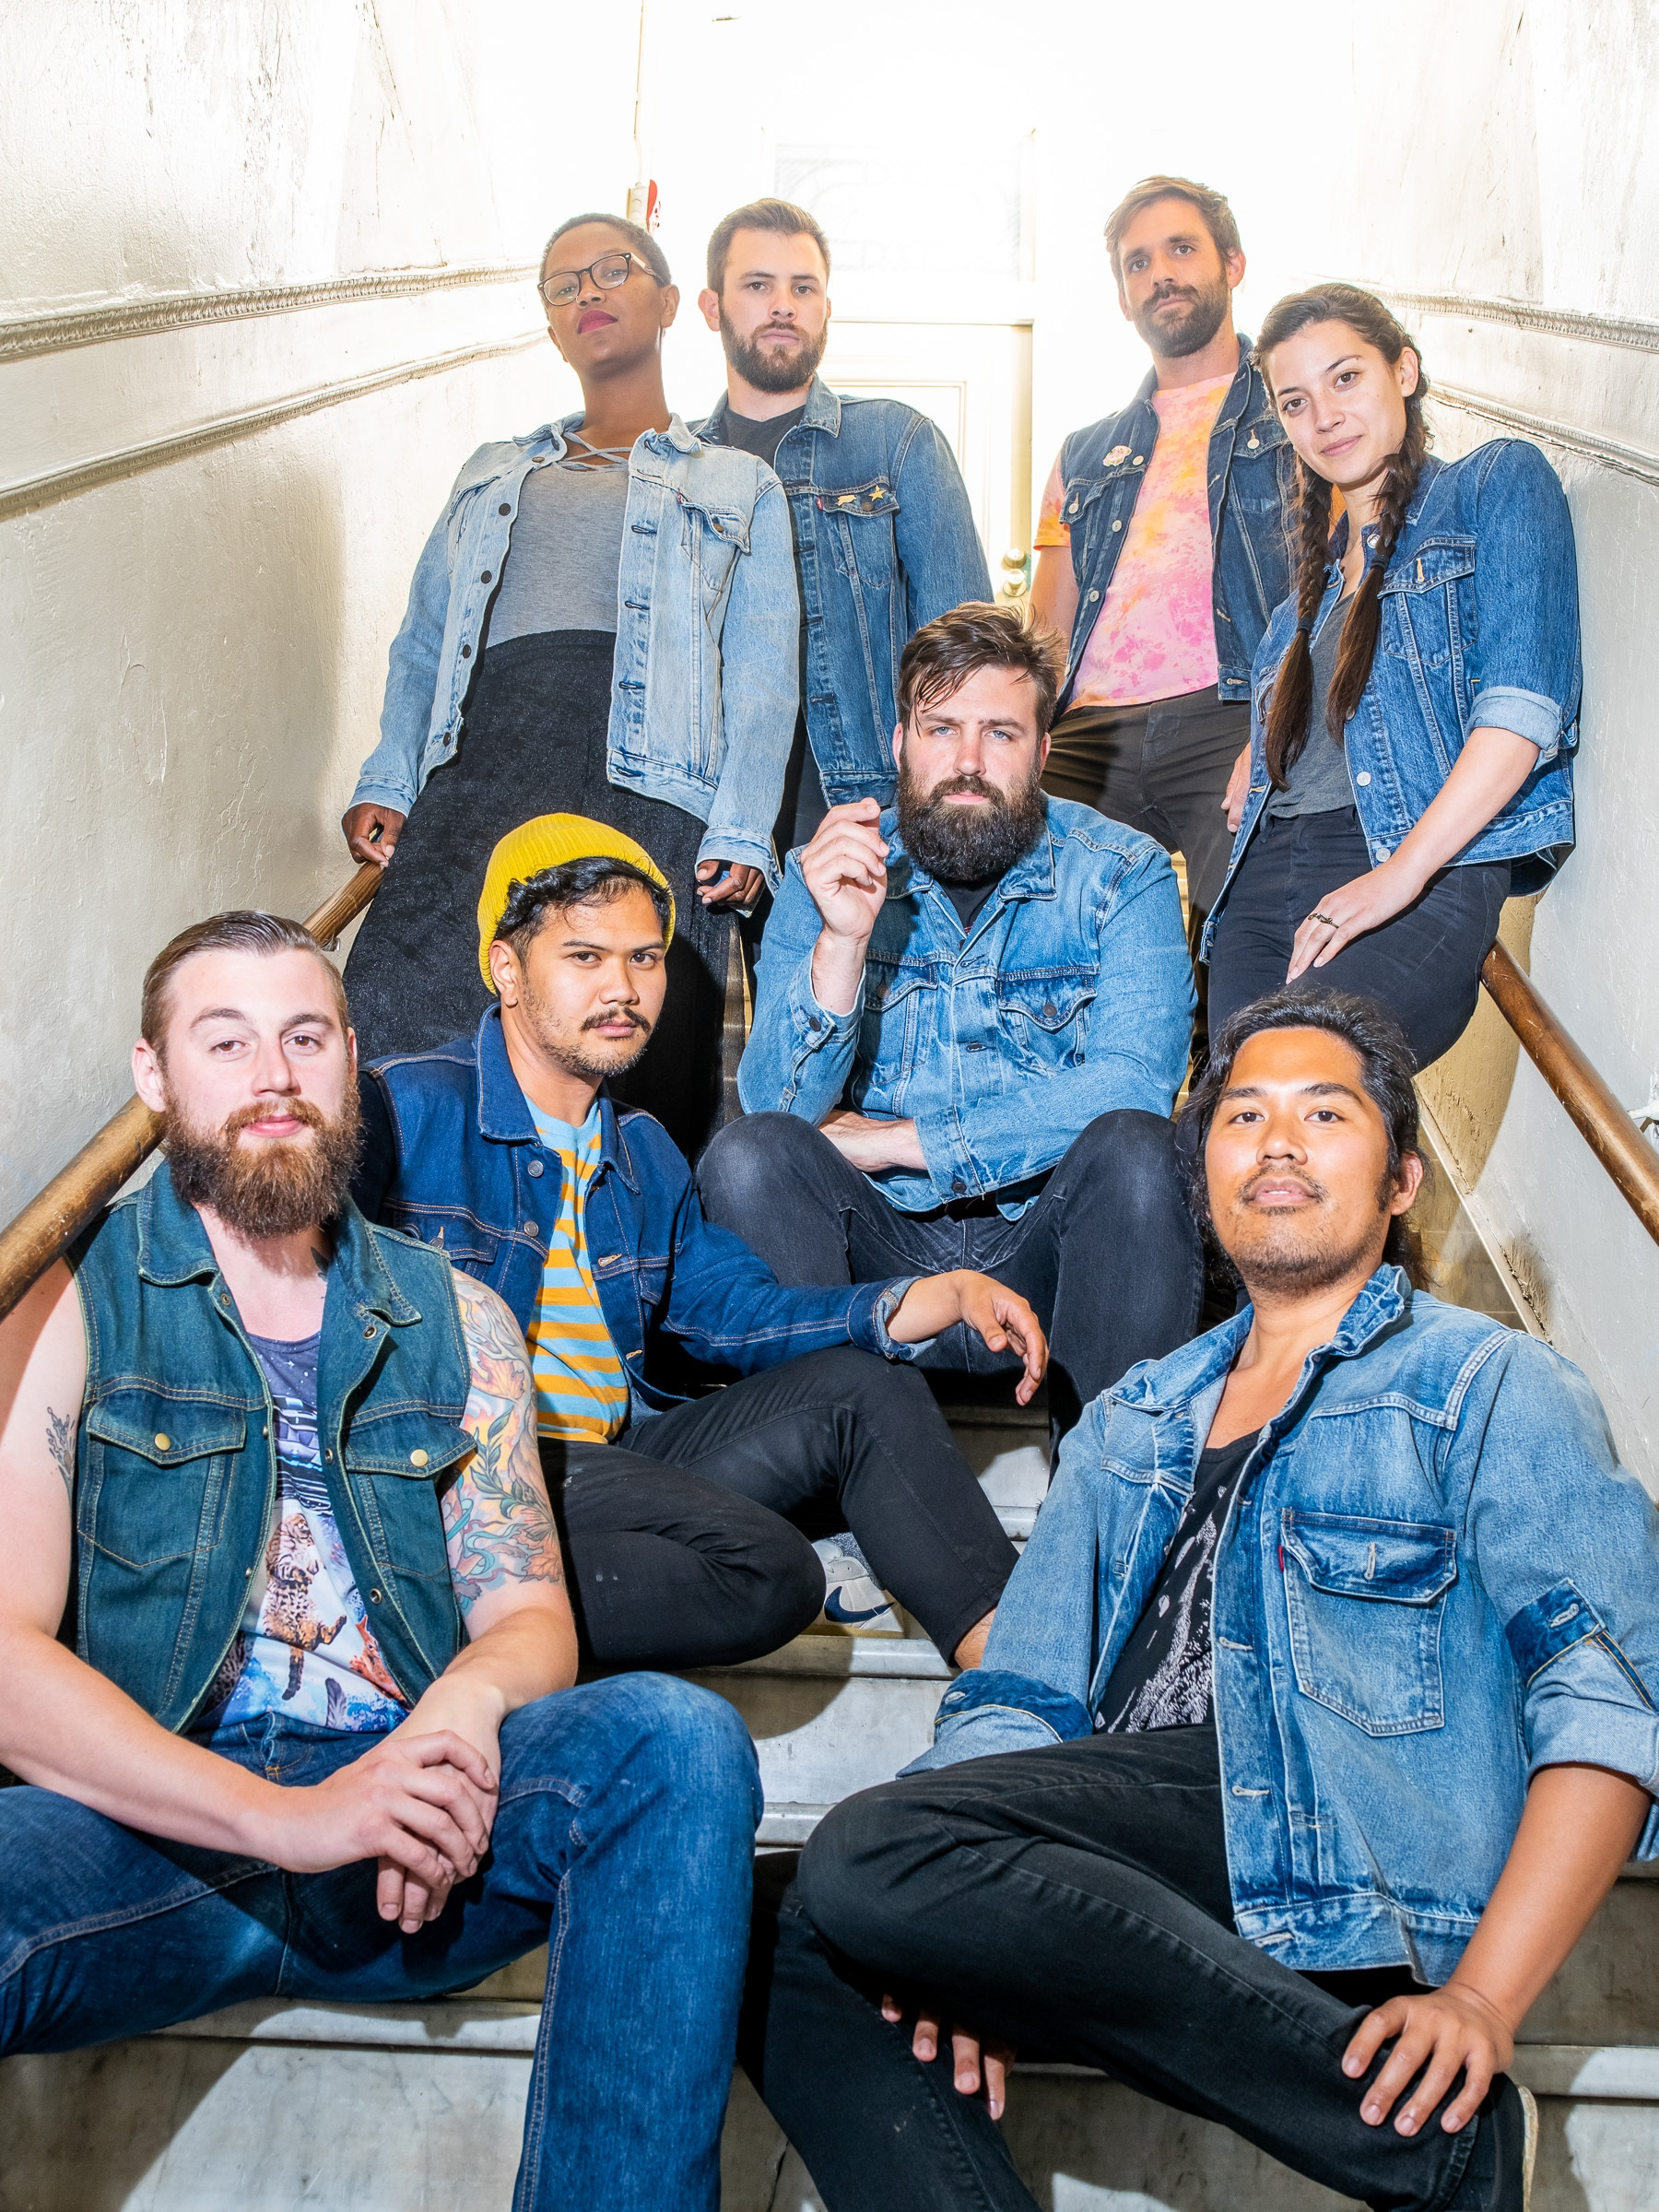 LEARN ABOUT THE CAST AND CREW - Our diverse cast and crew are all out of San Francisco. 8 friends who have been playing together for years.CAST AND CREW